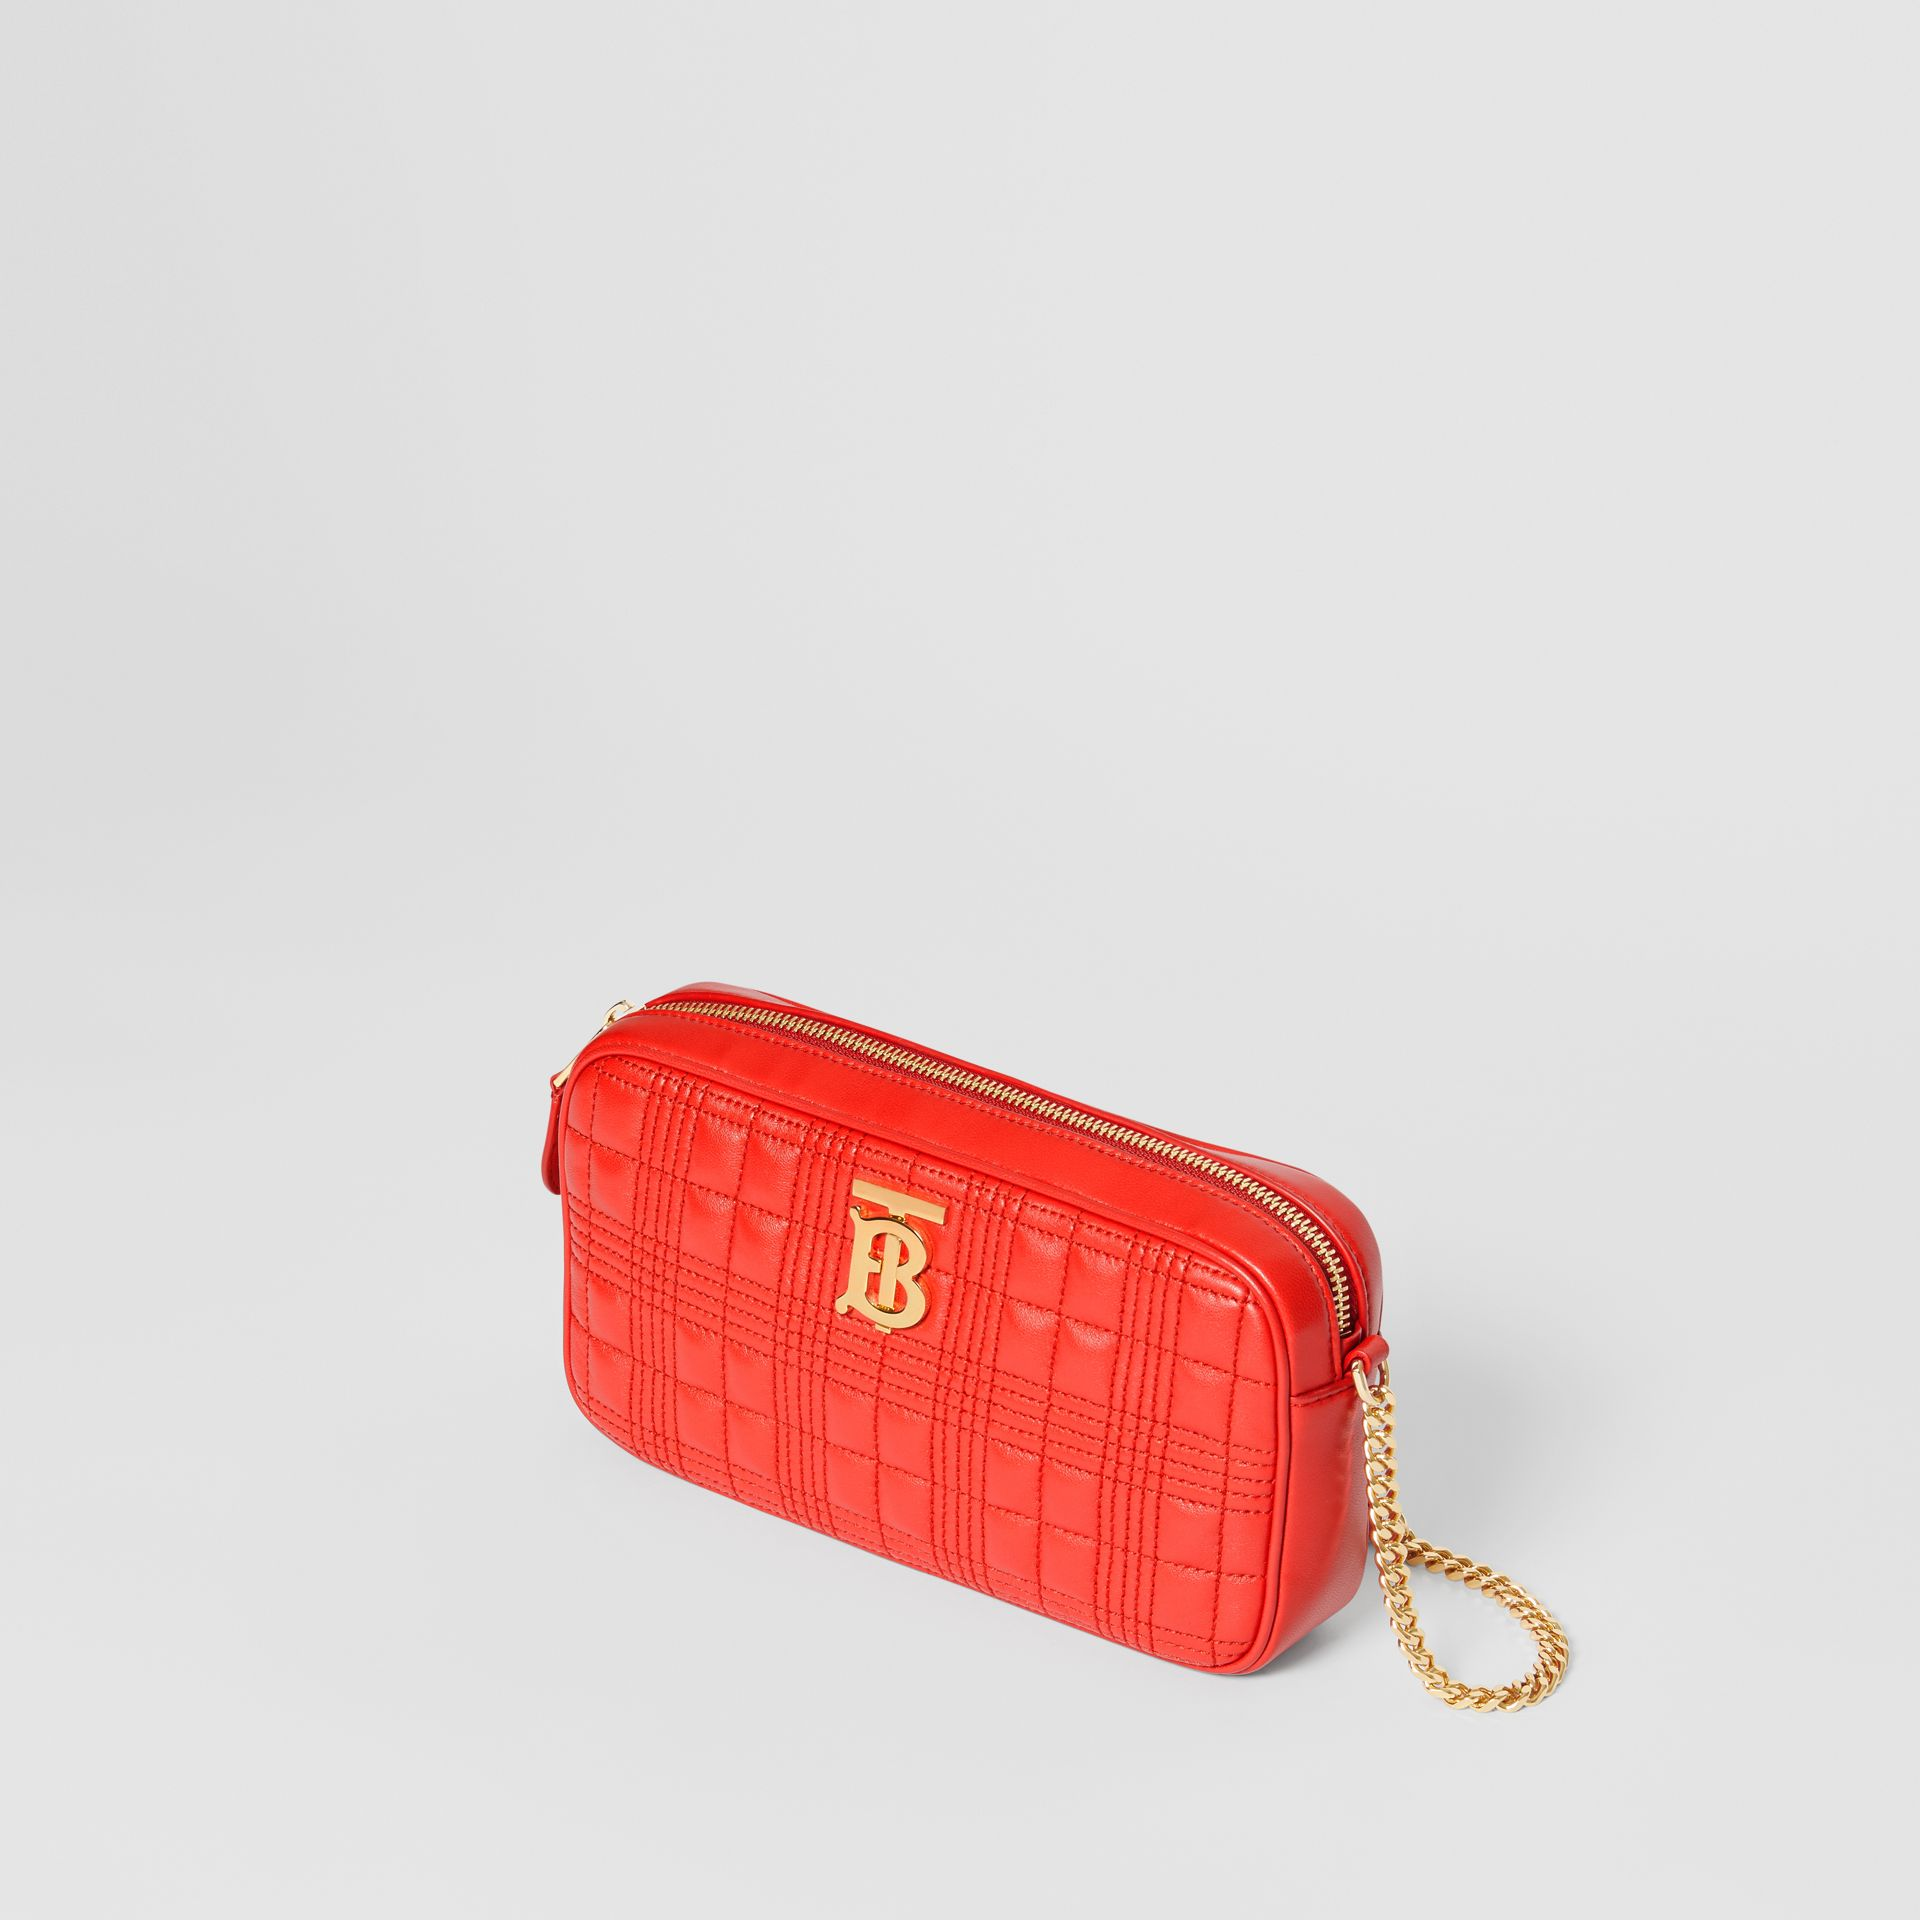 Quilted Lambskin Camera Bag in Bright Red - Women | Burberry United States - gallery image 3